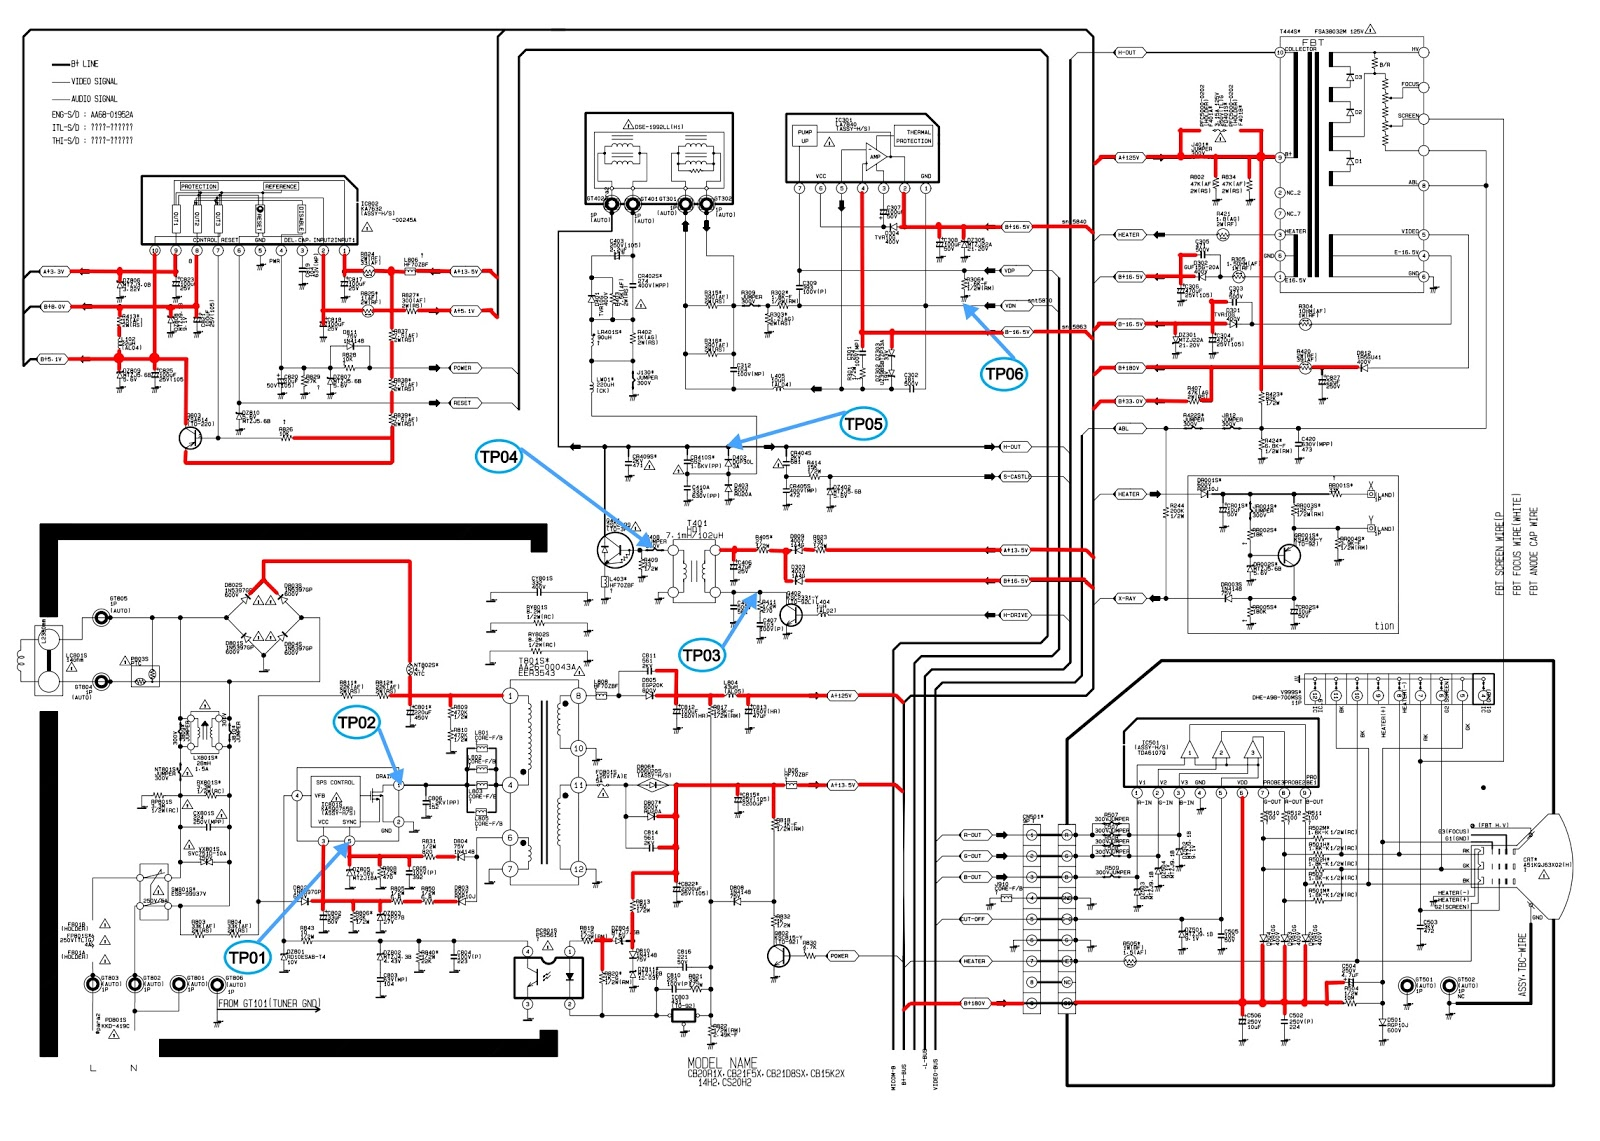 T V Circuit Diagram Expert Wiring Simple Led Schematic Flashingledunitcircuit Samsung Cs21m16mjzxnwt Crt Tv How To Enter The Service Mode R134a Onechip And Micom